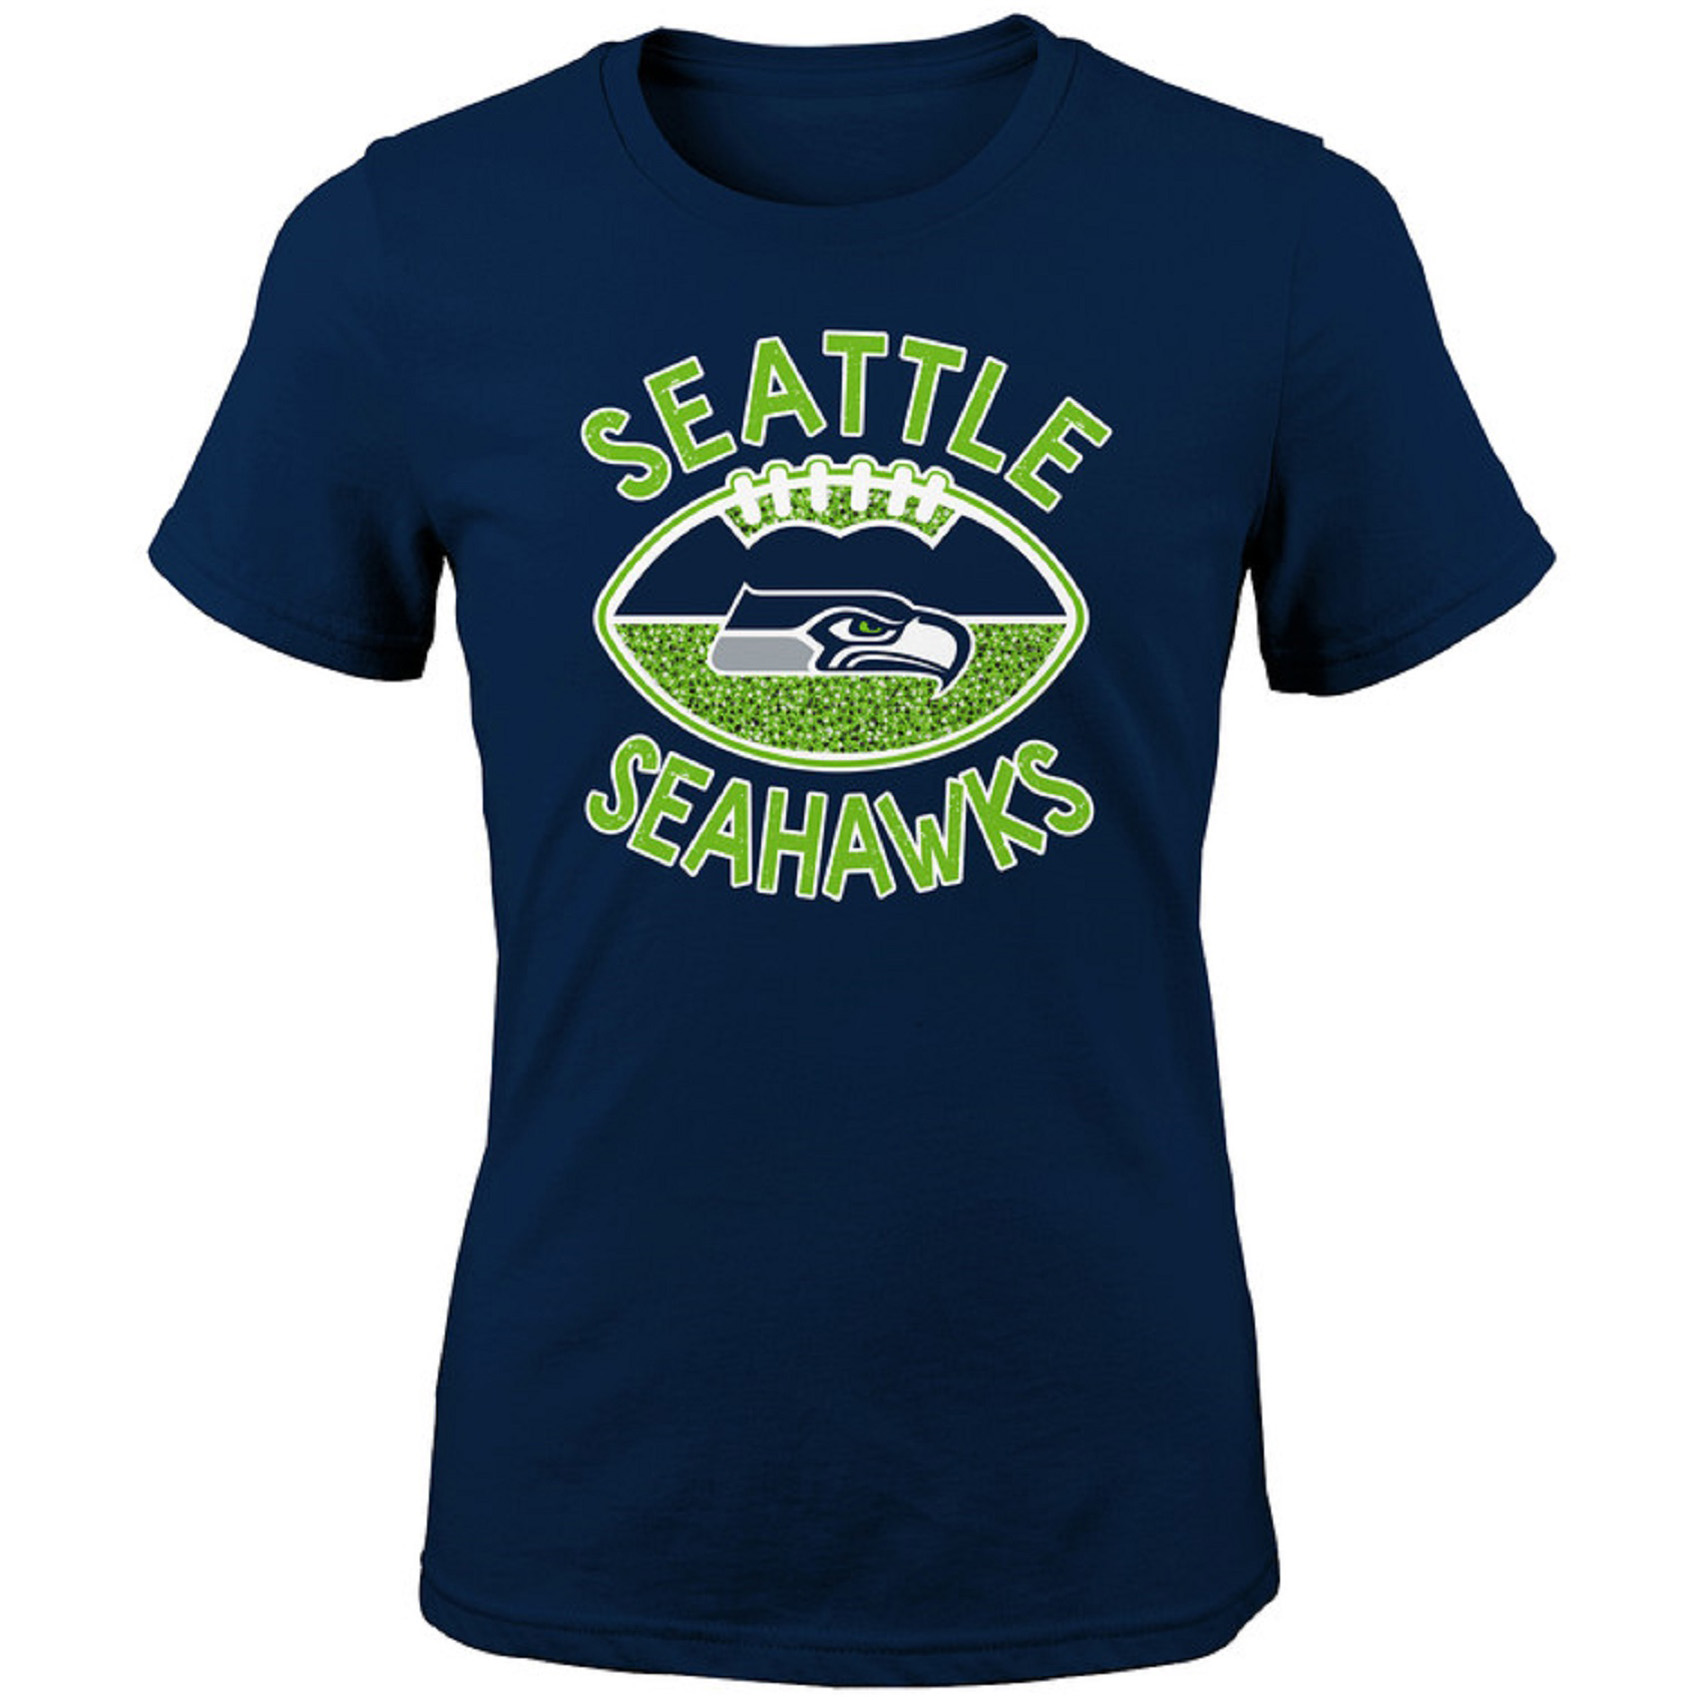 Girls Youth College Navy Seattle Seahawks Glitter T-Shirt